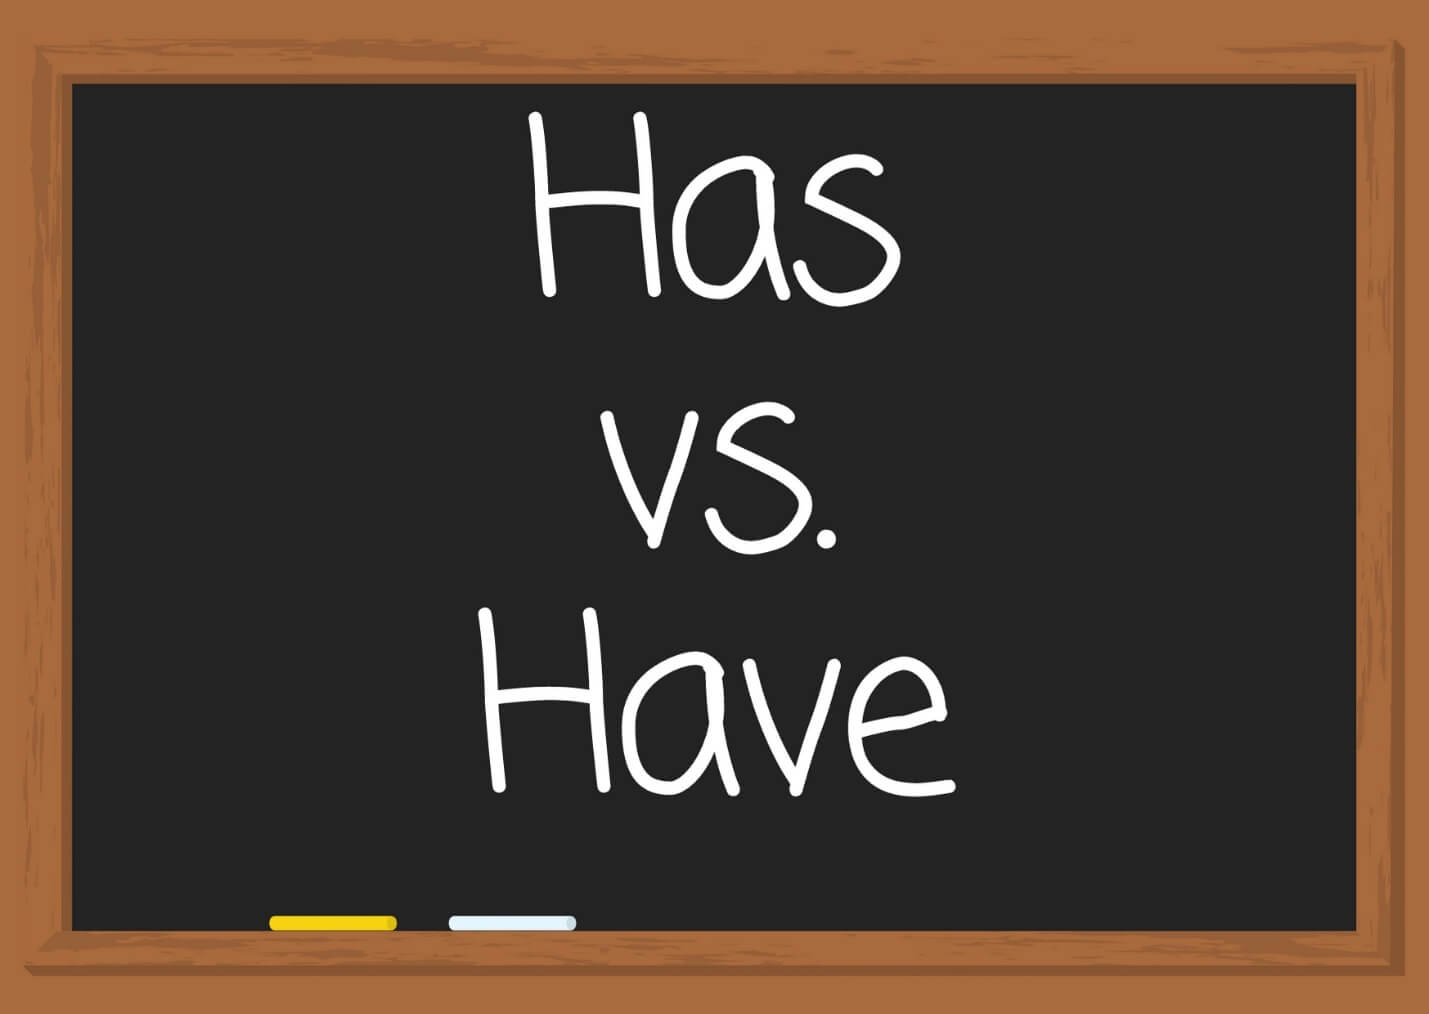 Difference Between Has and Have